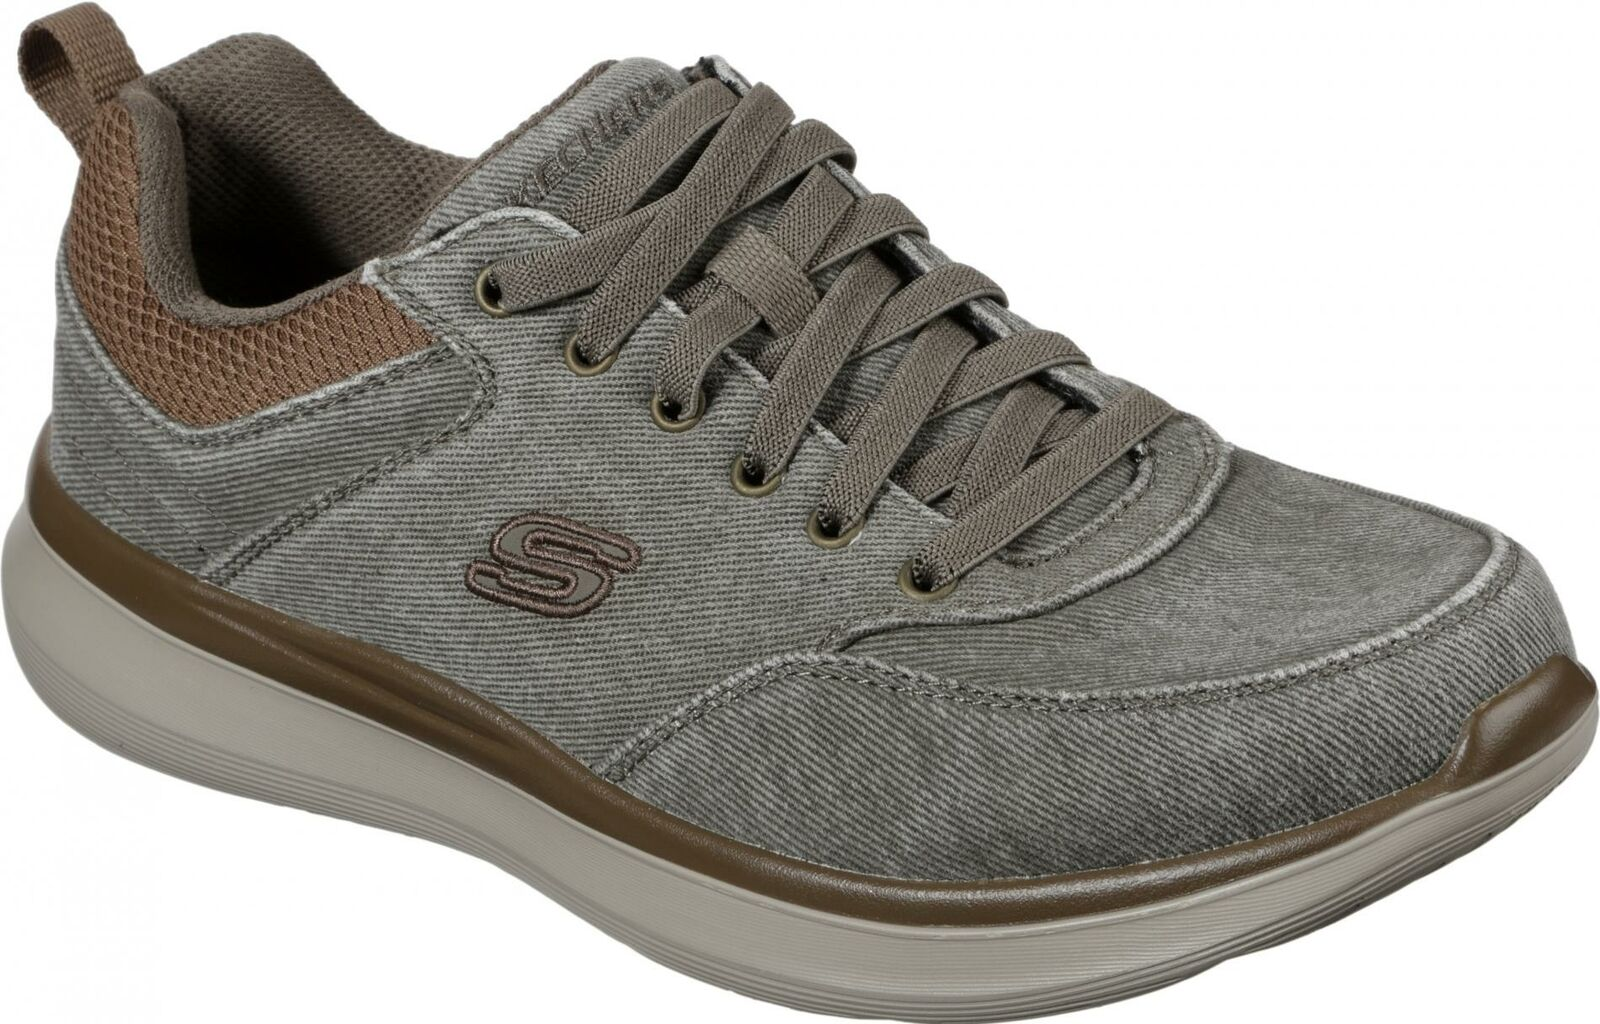 Skechers DELSON 2.0 KEMPER Mens Lightweight Canvas Slip On Casual Trainers Khaki